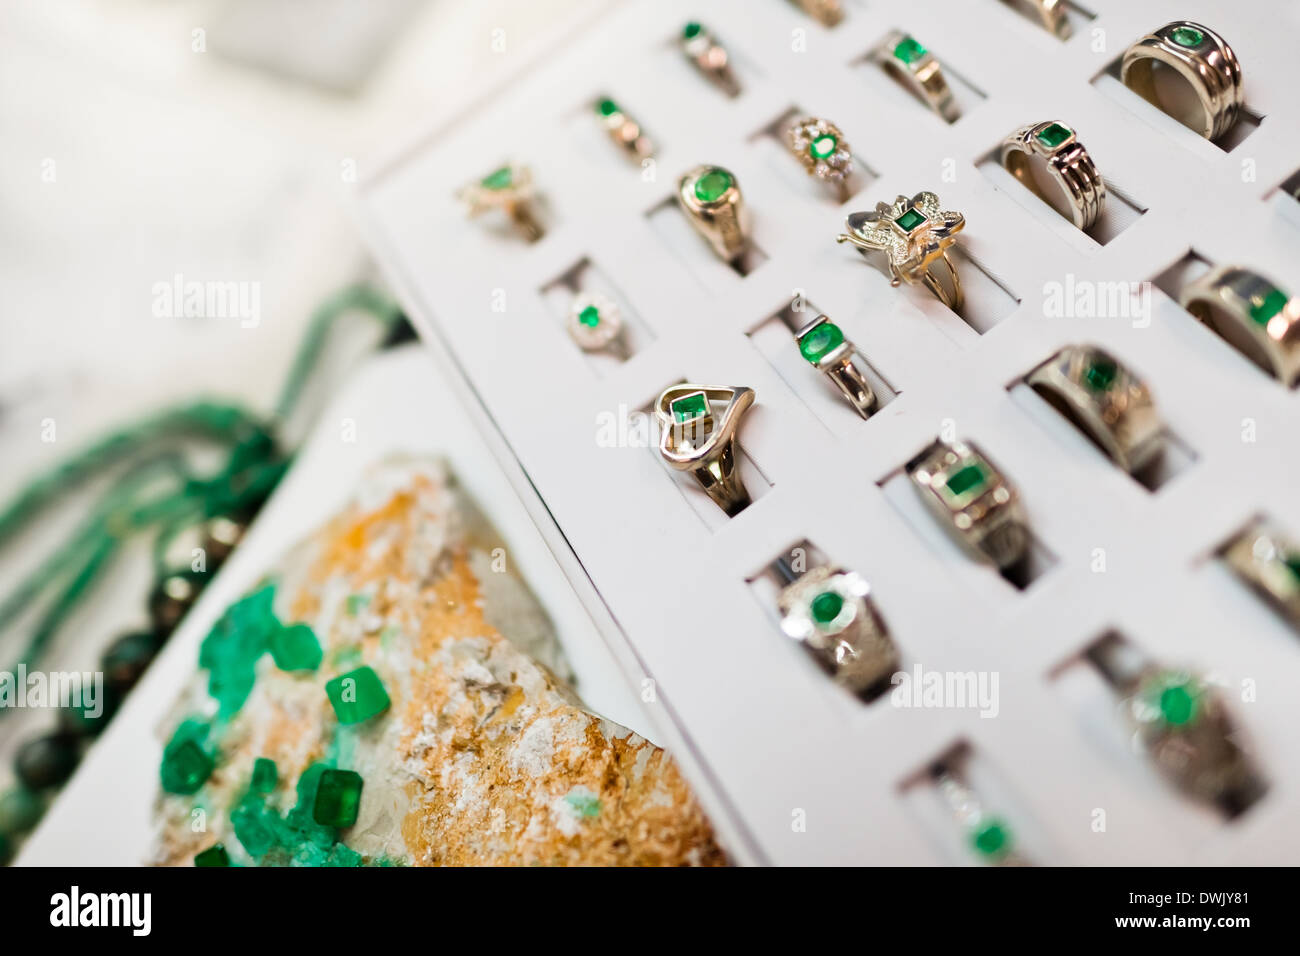 A jewelry display box, containing gold rings with emeralds, is seen in the jewelry workshop in Bogota, Colombia. - Stock Image